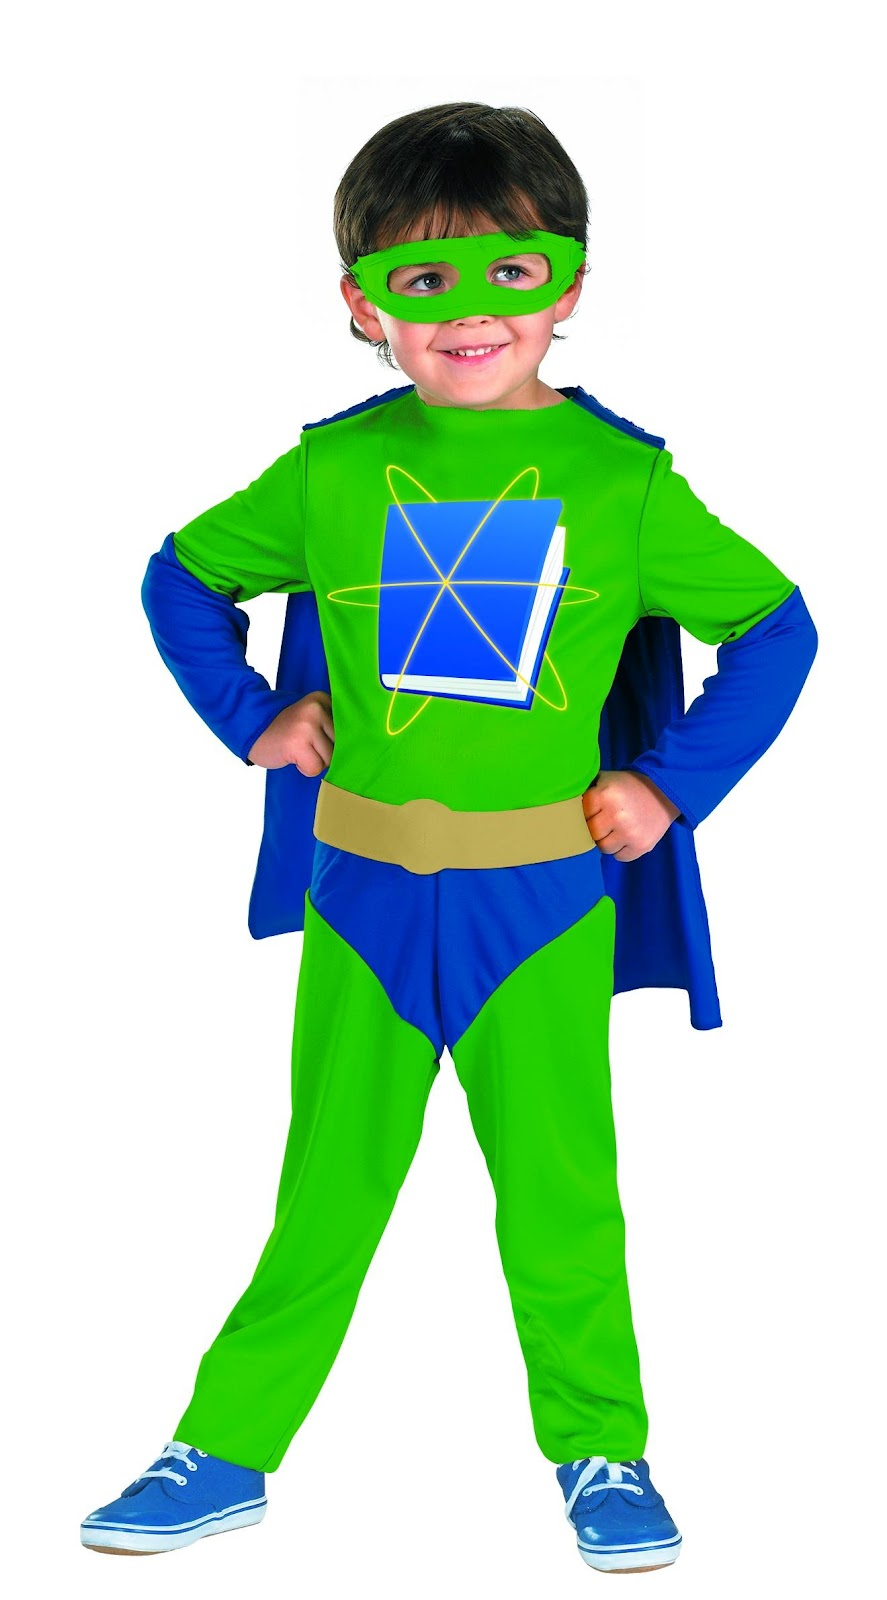 Homemade Halloween Costumes: No-Sew Superheros. Find this Pin and more on DIY Projects by lia griffith. DIY Superhero costumes for kids Have you ever before wondered just what it would resemble to be a superhero?